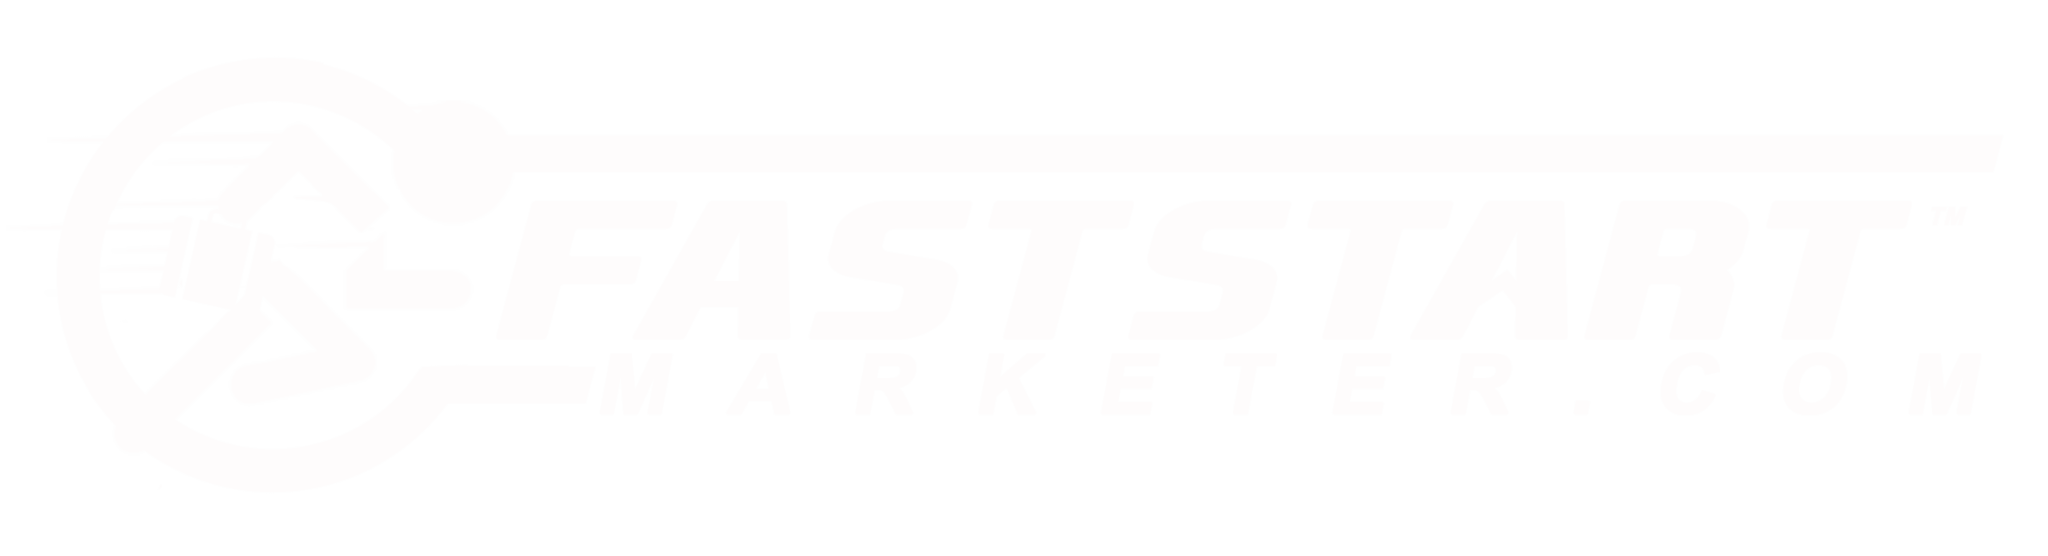 fast-start-marketer-logo-07-21-15-white